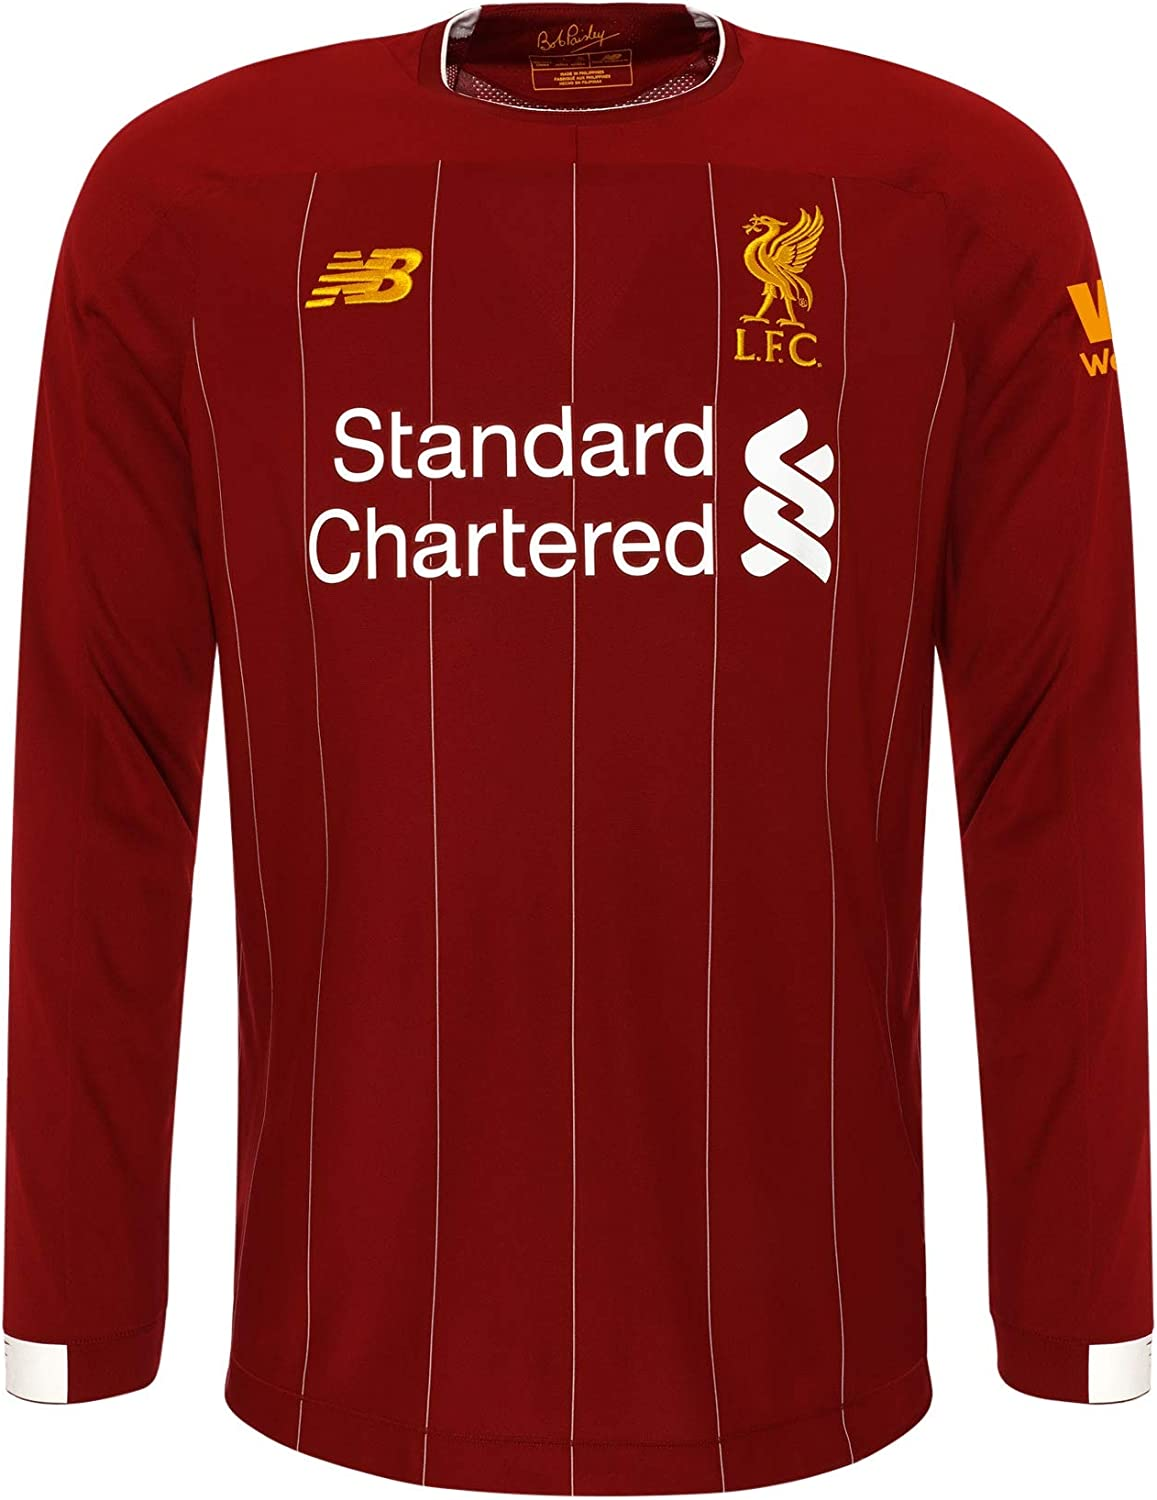 Liverpool FC Home Kit 2019 2020 Red Long Sleeve Polyester Boys Football Shirt LFC Official